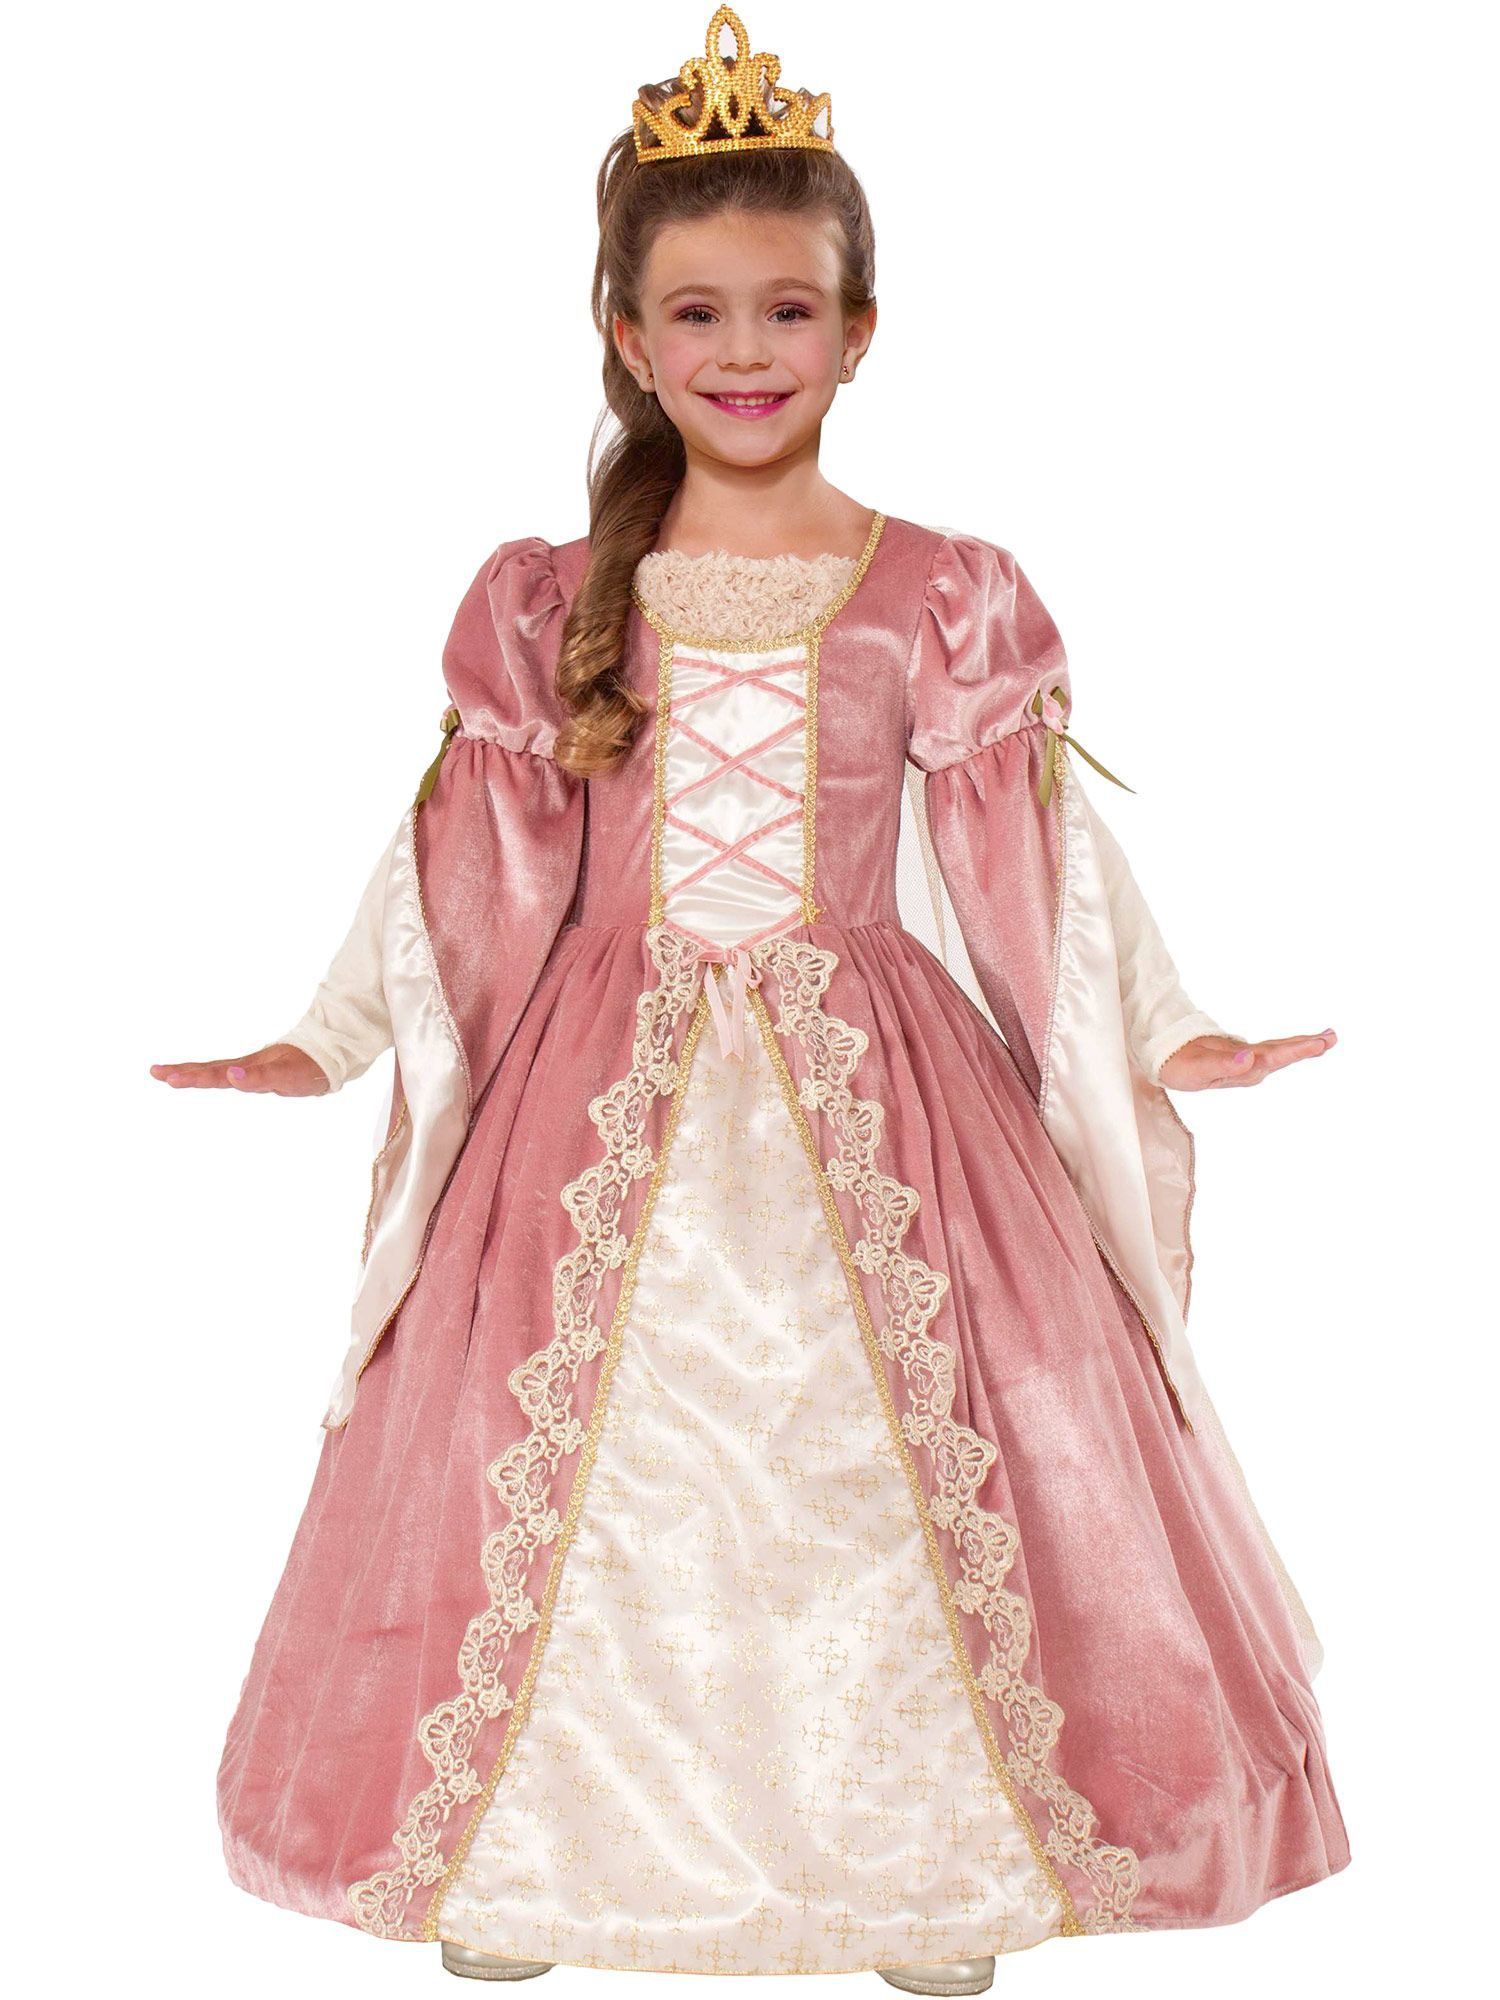 Victorian Rose Girlu0027s Costume  sc 1 st  Wholesale Halloween Costumes & Girlu0027s Victorian Rose Costume - Renaissance Girls Costumes